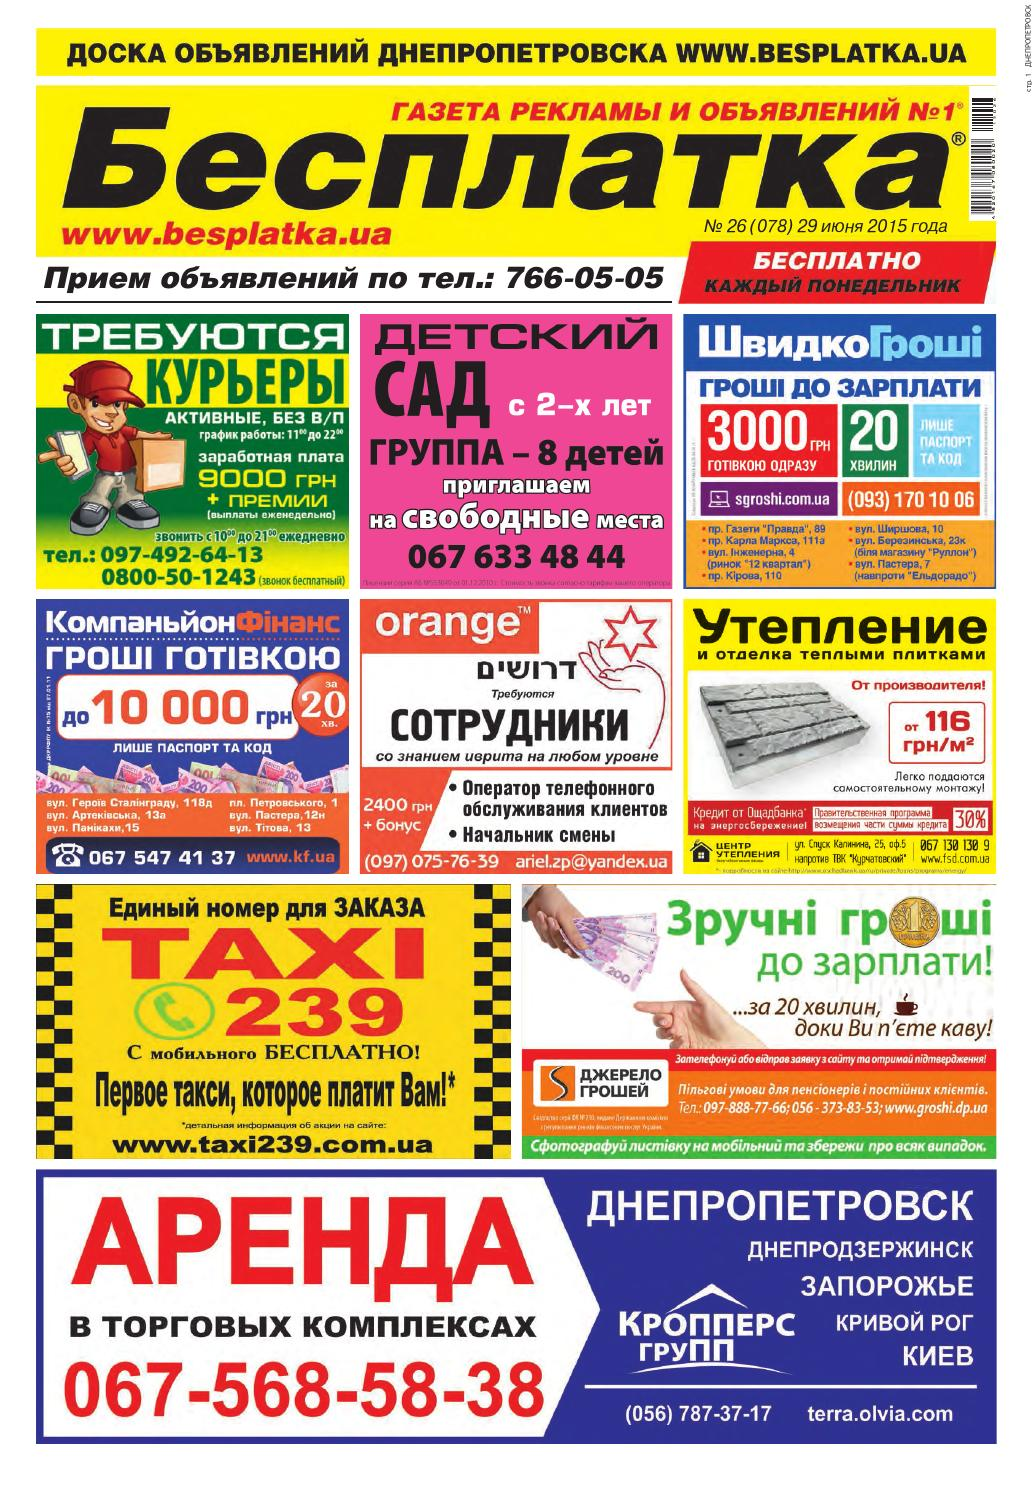 Besplatka  26 Днепропетровск by besplatka ukraine - issuu 5794c45299b